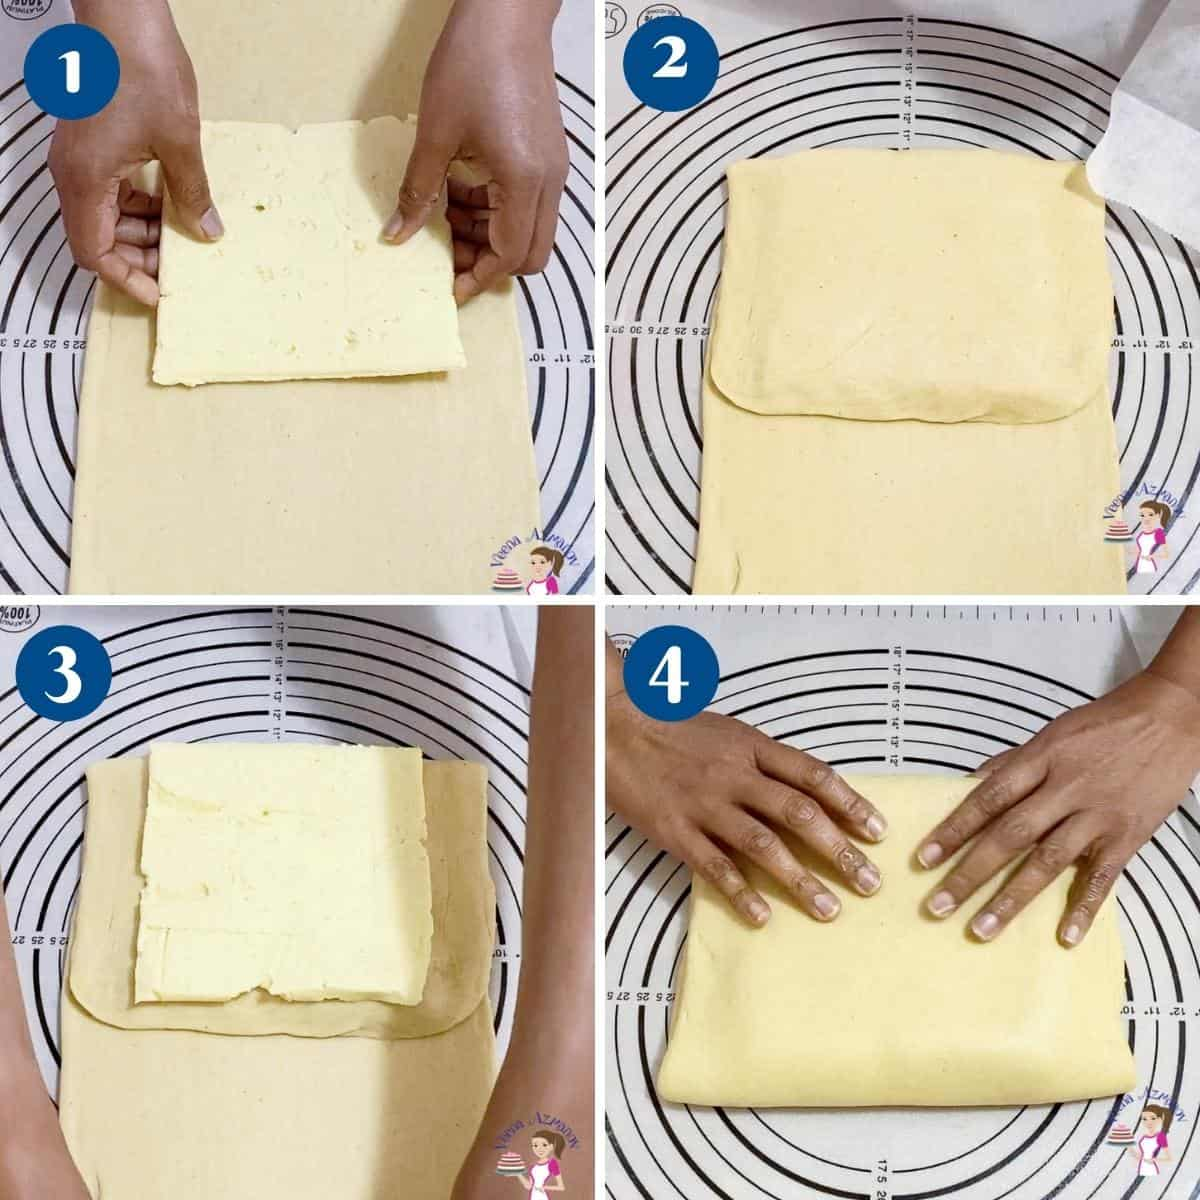 Progress pictures collage folding the butter into Danish dough.